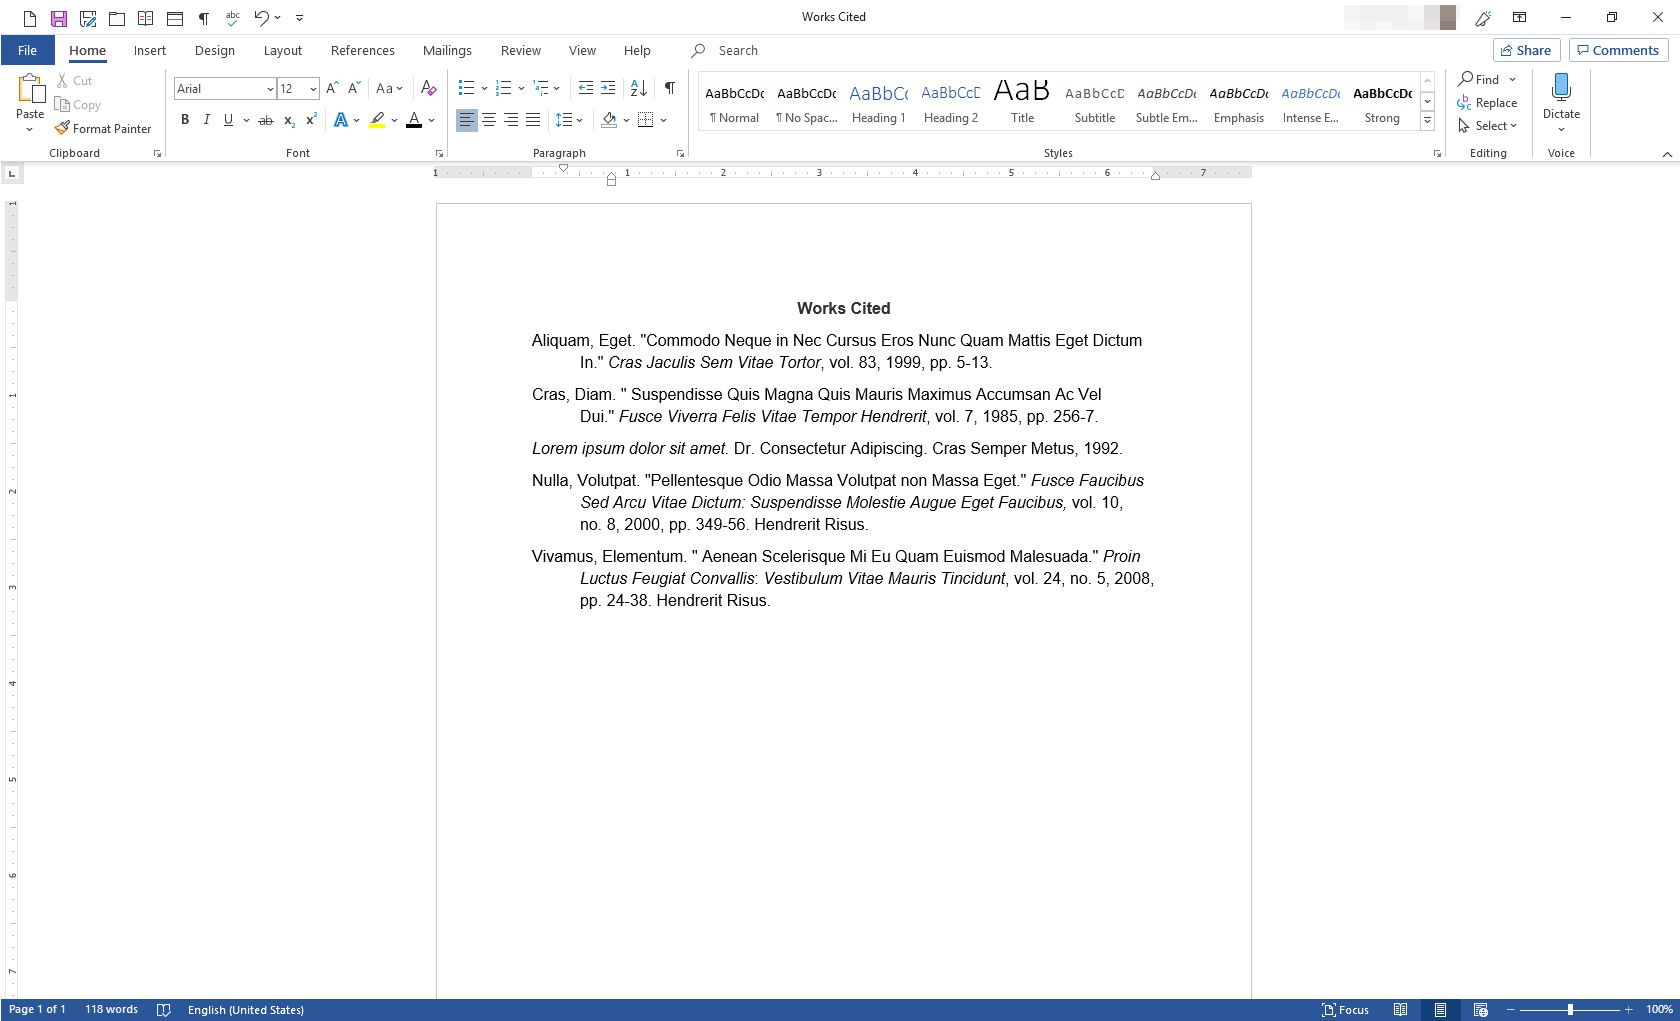 MS Word with Works Cited document using hanging indentation